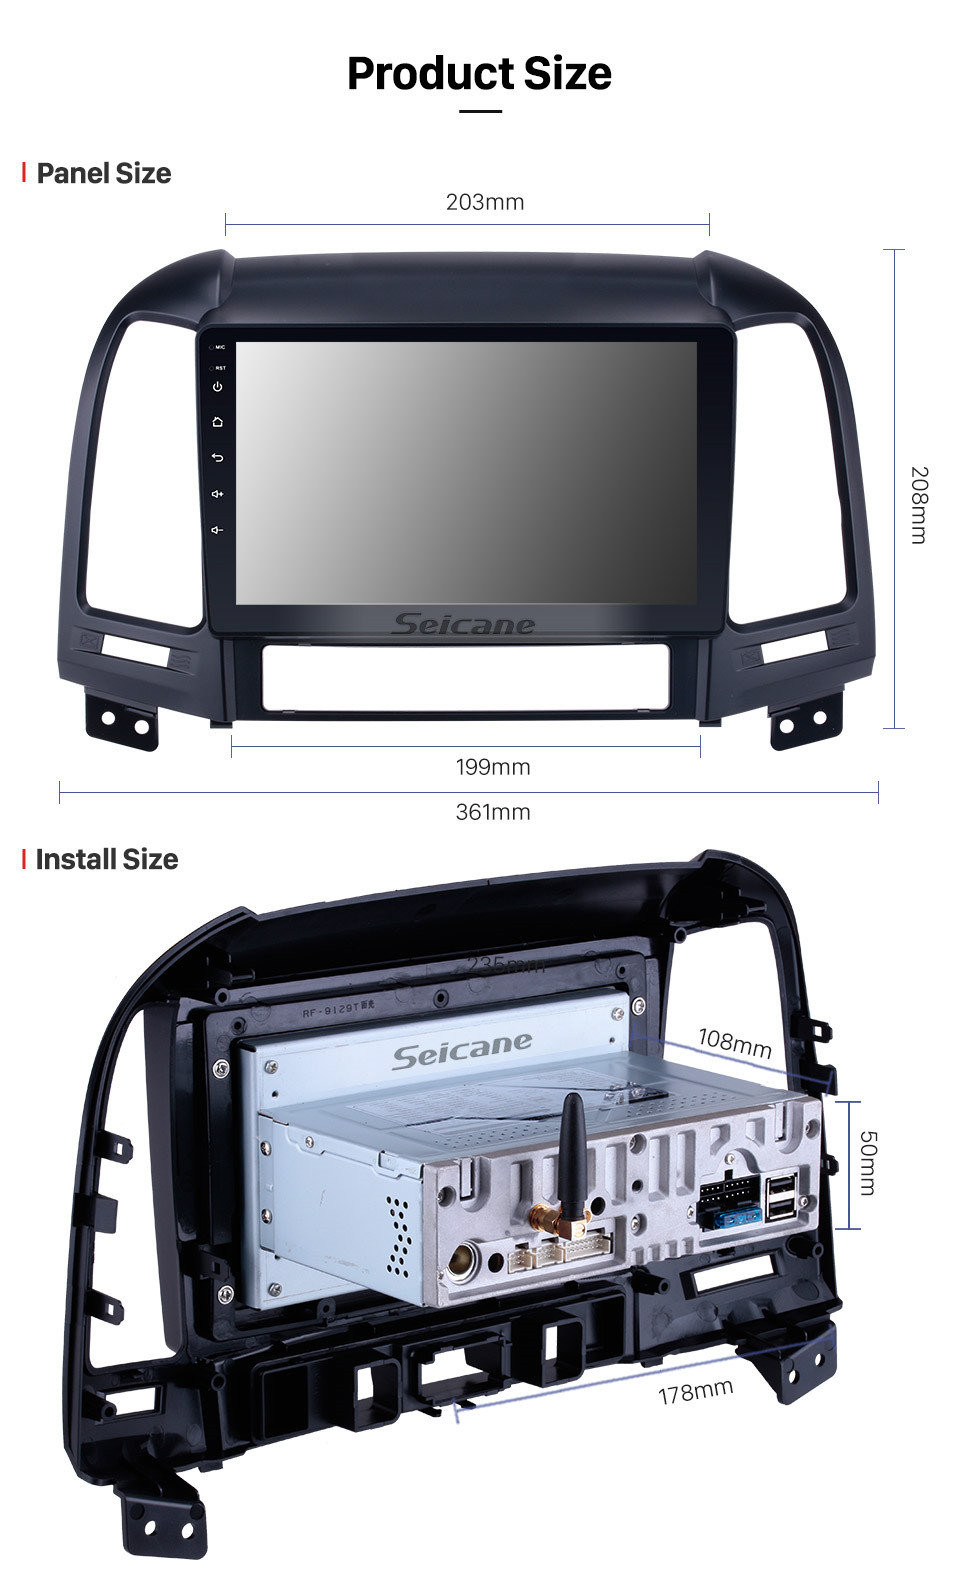 Seicane 2006-2012 Hyundai SANTA FE Aftermarket Android 10.0 HD 1024*600 touch screen navigation system Radio  Bluetooth OBD2 DVR Rearview camera TV 1080P Video 4G WIFI Steering Wheel Control GPS USB Mirror link DVD Player